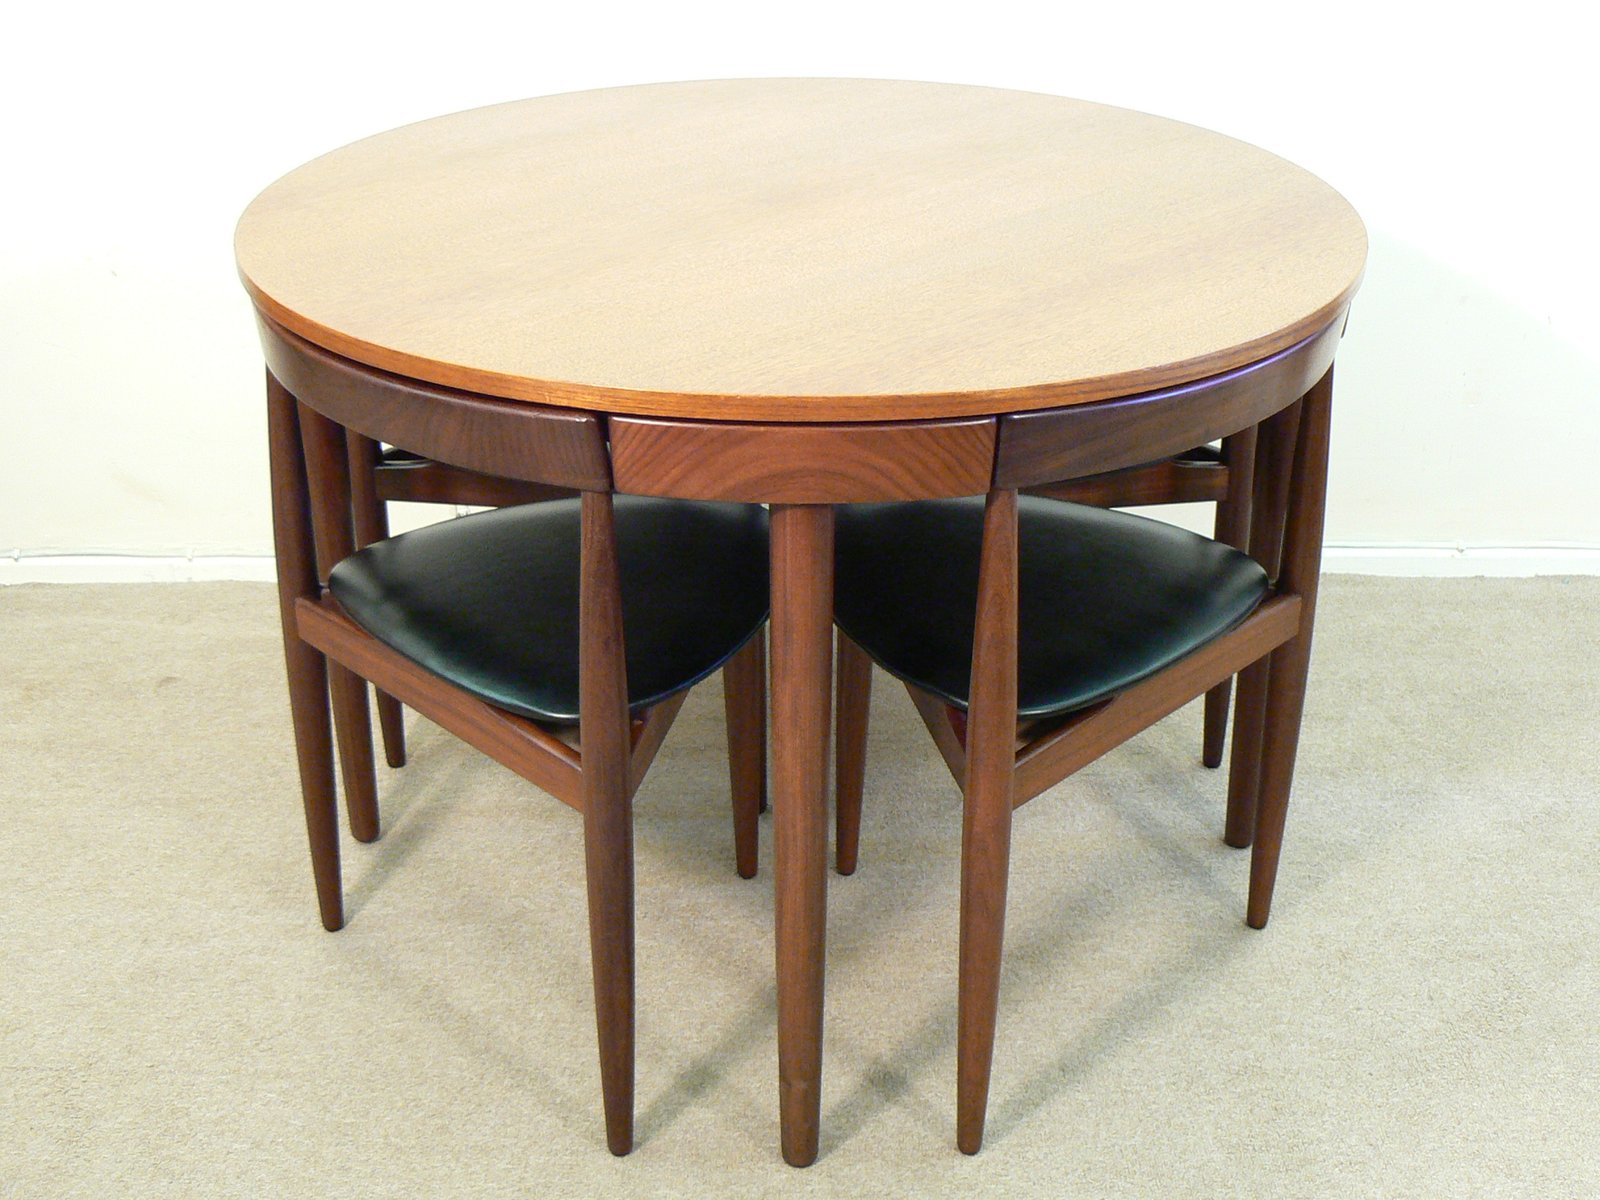 dining table sets. Dining Table Set By Hans Olsen For Frem Rojle, 1960s Sets R